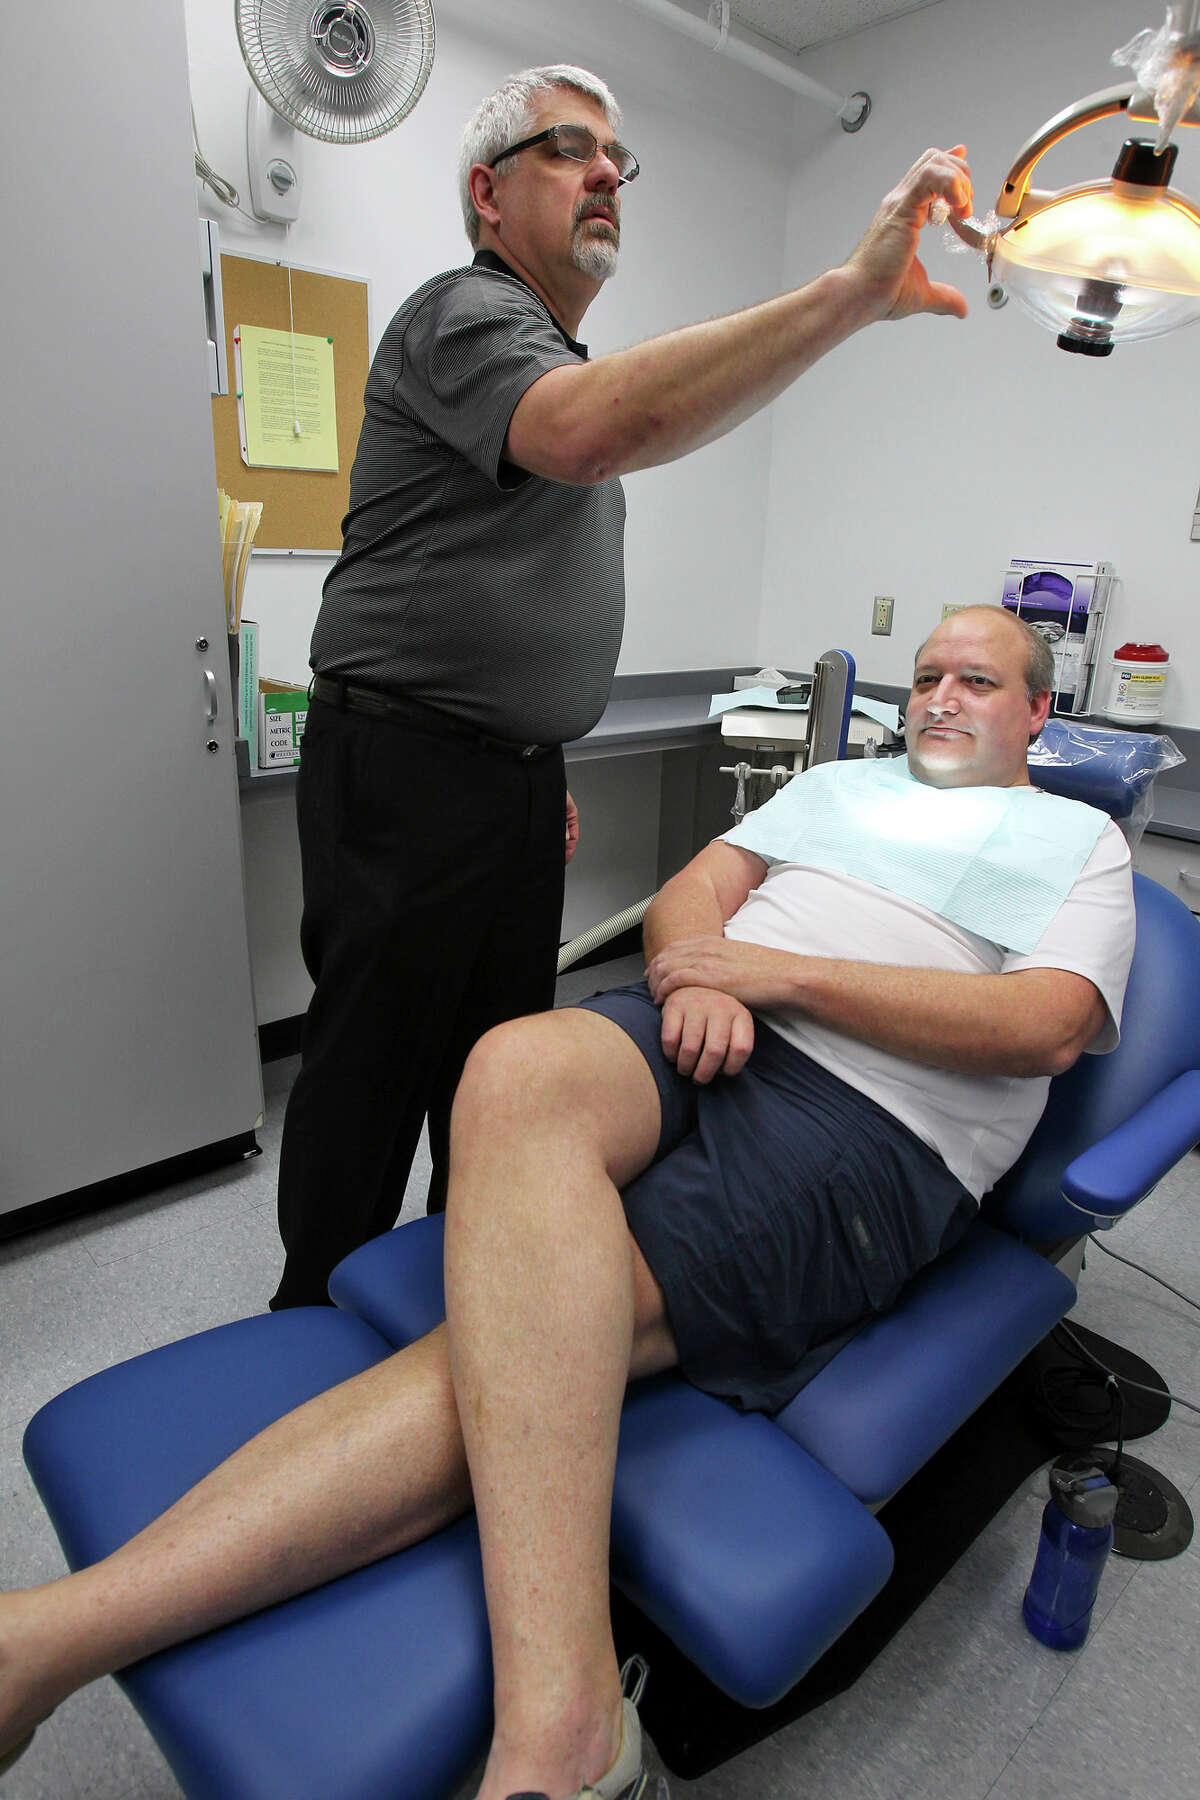 """Diaco Dental representative Brian Trewella demonstrates as George Booth, a 6'5"""", 300 lbs. plus guy, rests in a new large size dental chair at the University of Texas Helath Science Center Dental School on May 9, 2012."""